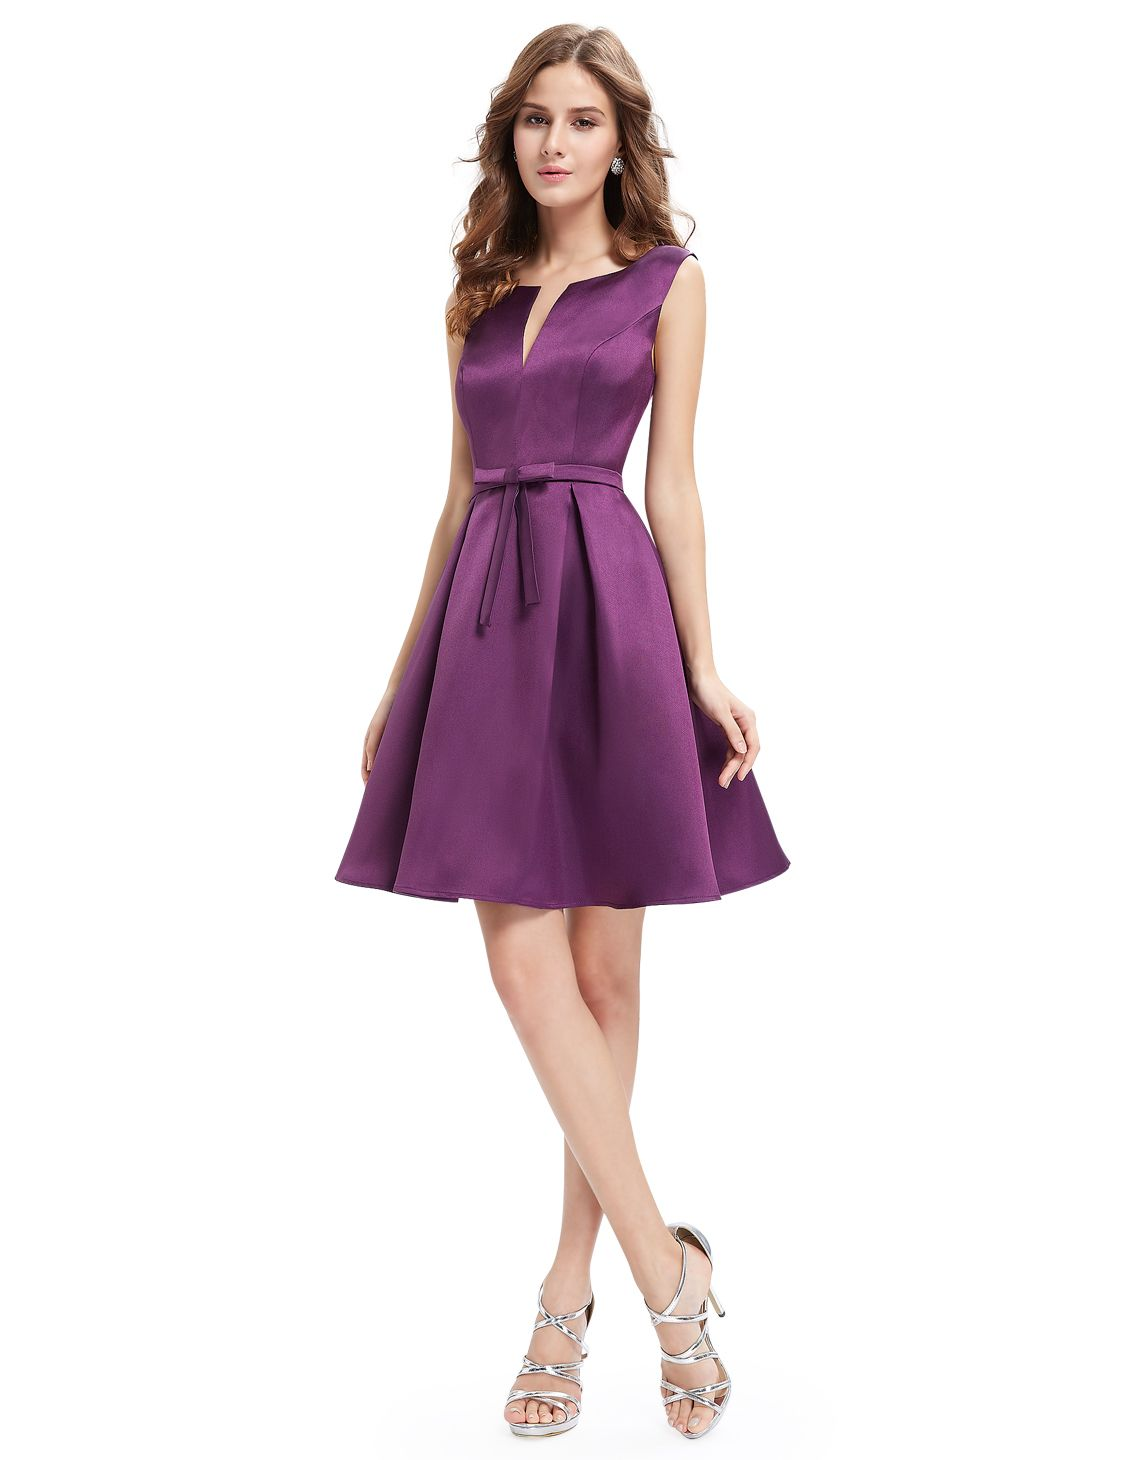 Violet Sleeveless Short Dress - Mark & Roberts | Cocktail and Club ...